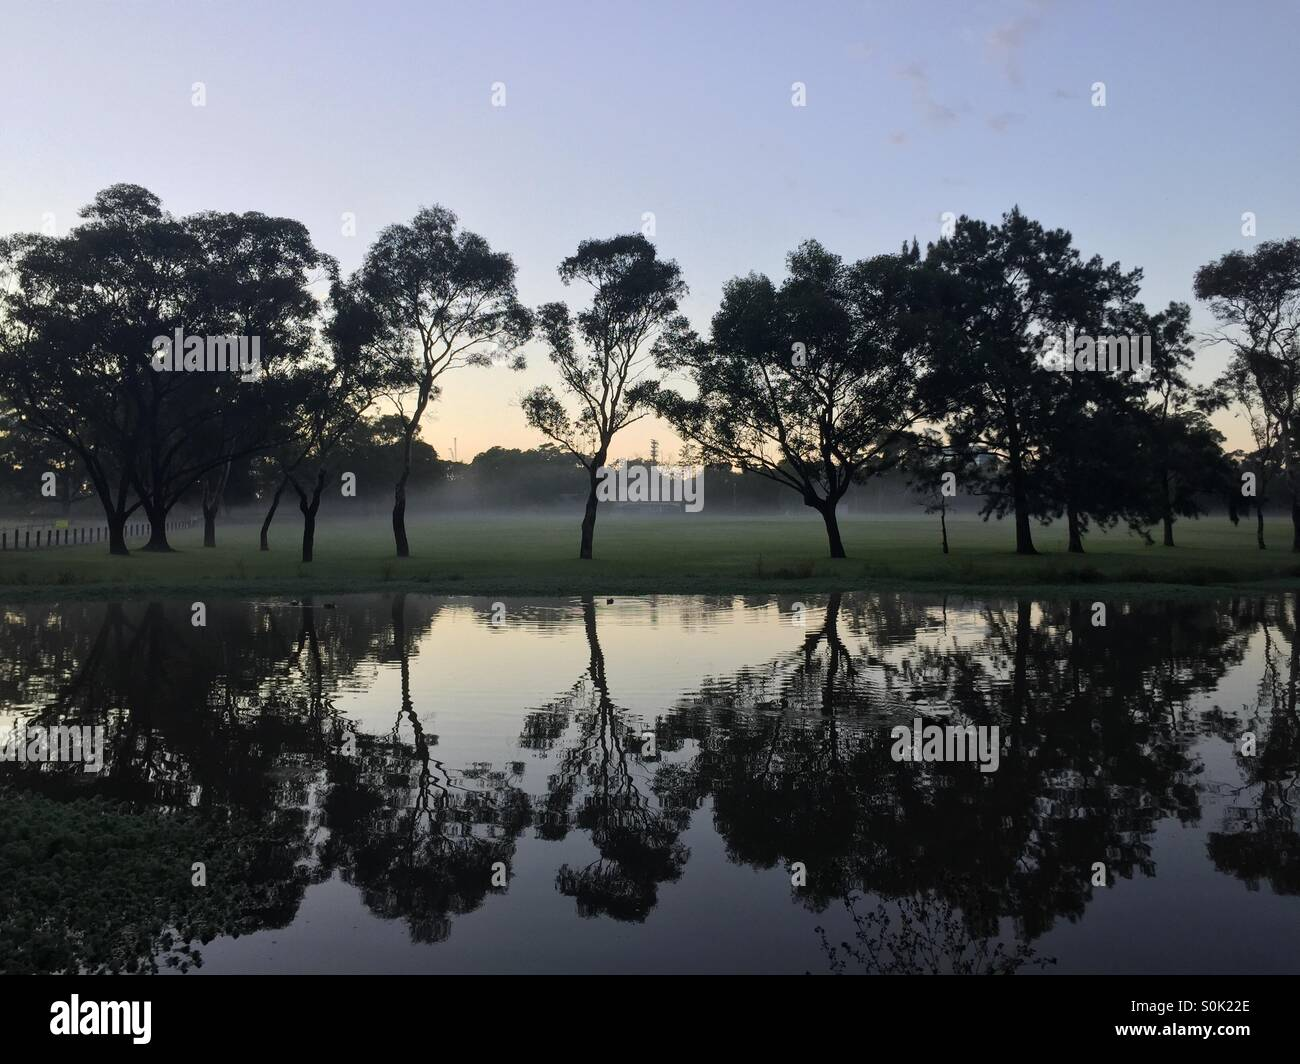 Sydney park water reflections - Stock Image